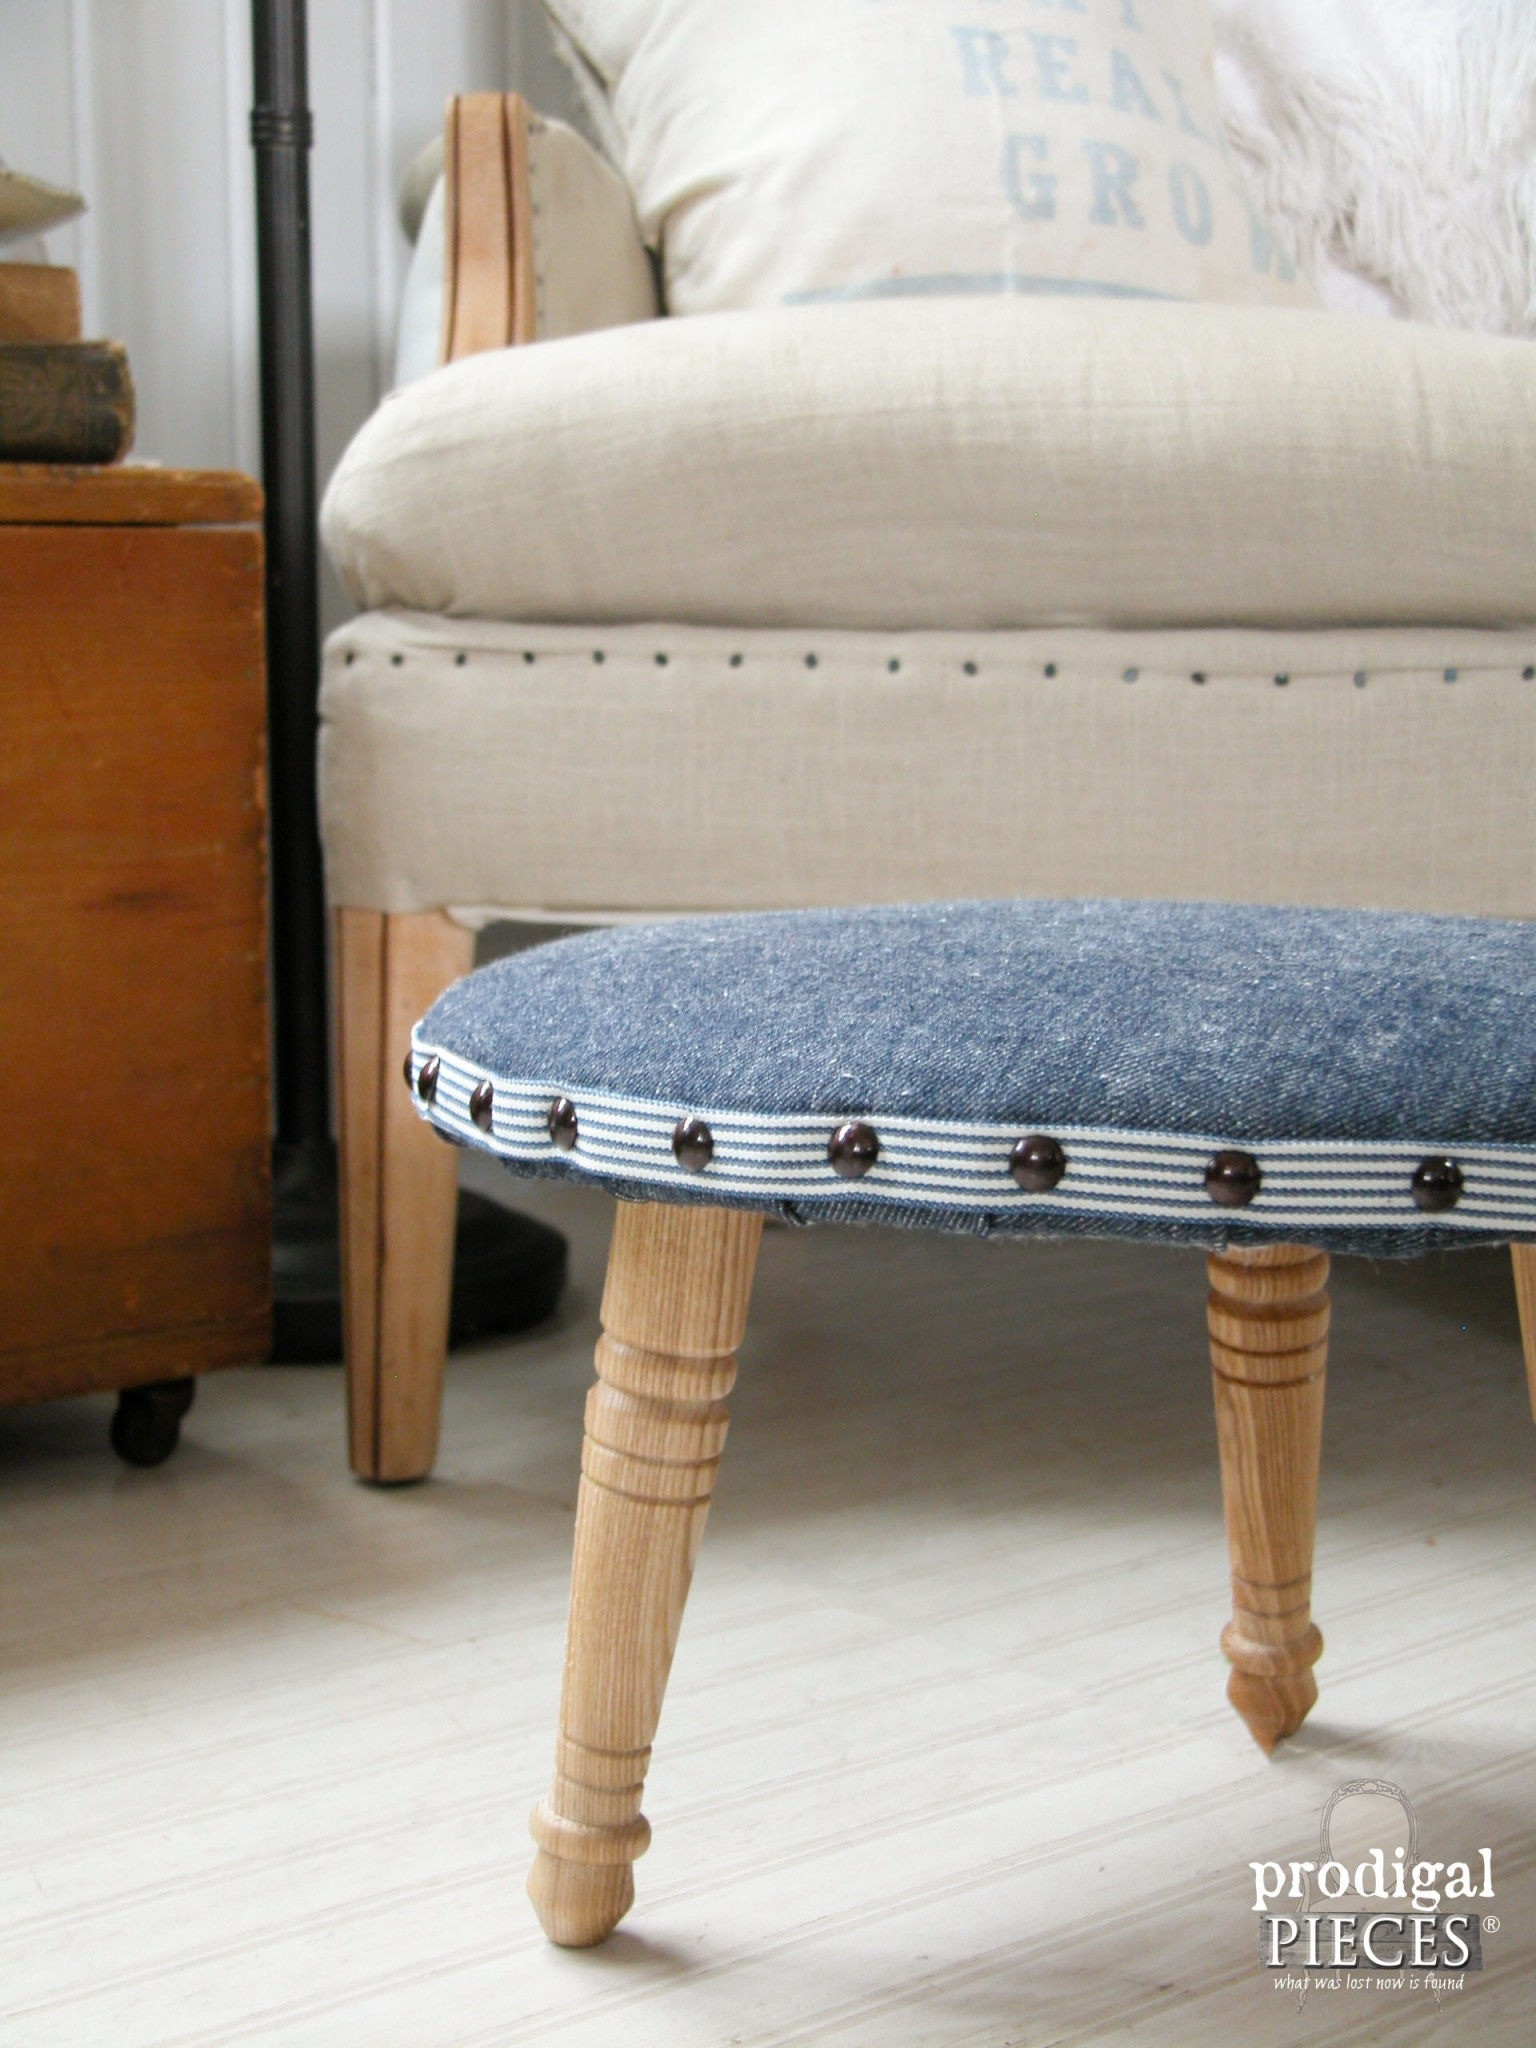 Upholstered Footstool A One Legged Wonder Prodigal Pieces Regarding Upholstered Footstools (Image 14 of 15)